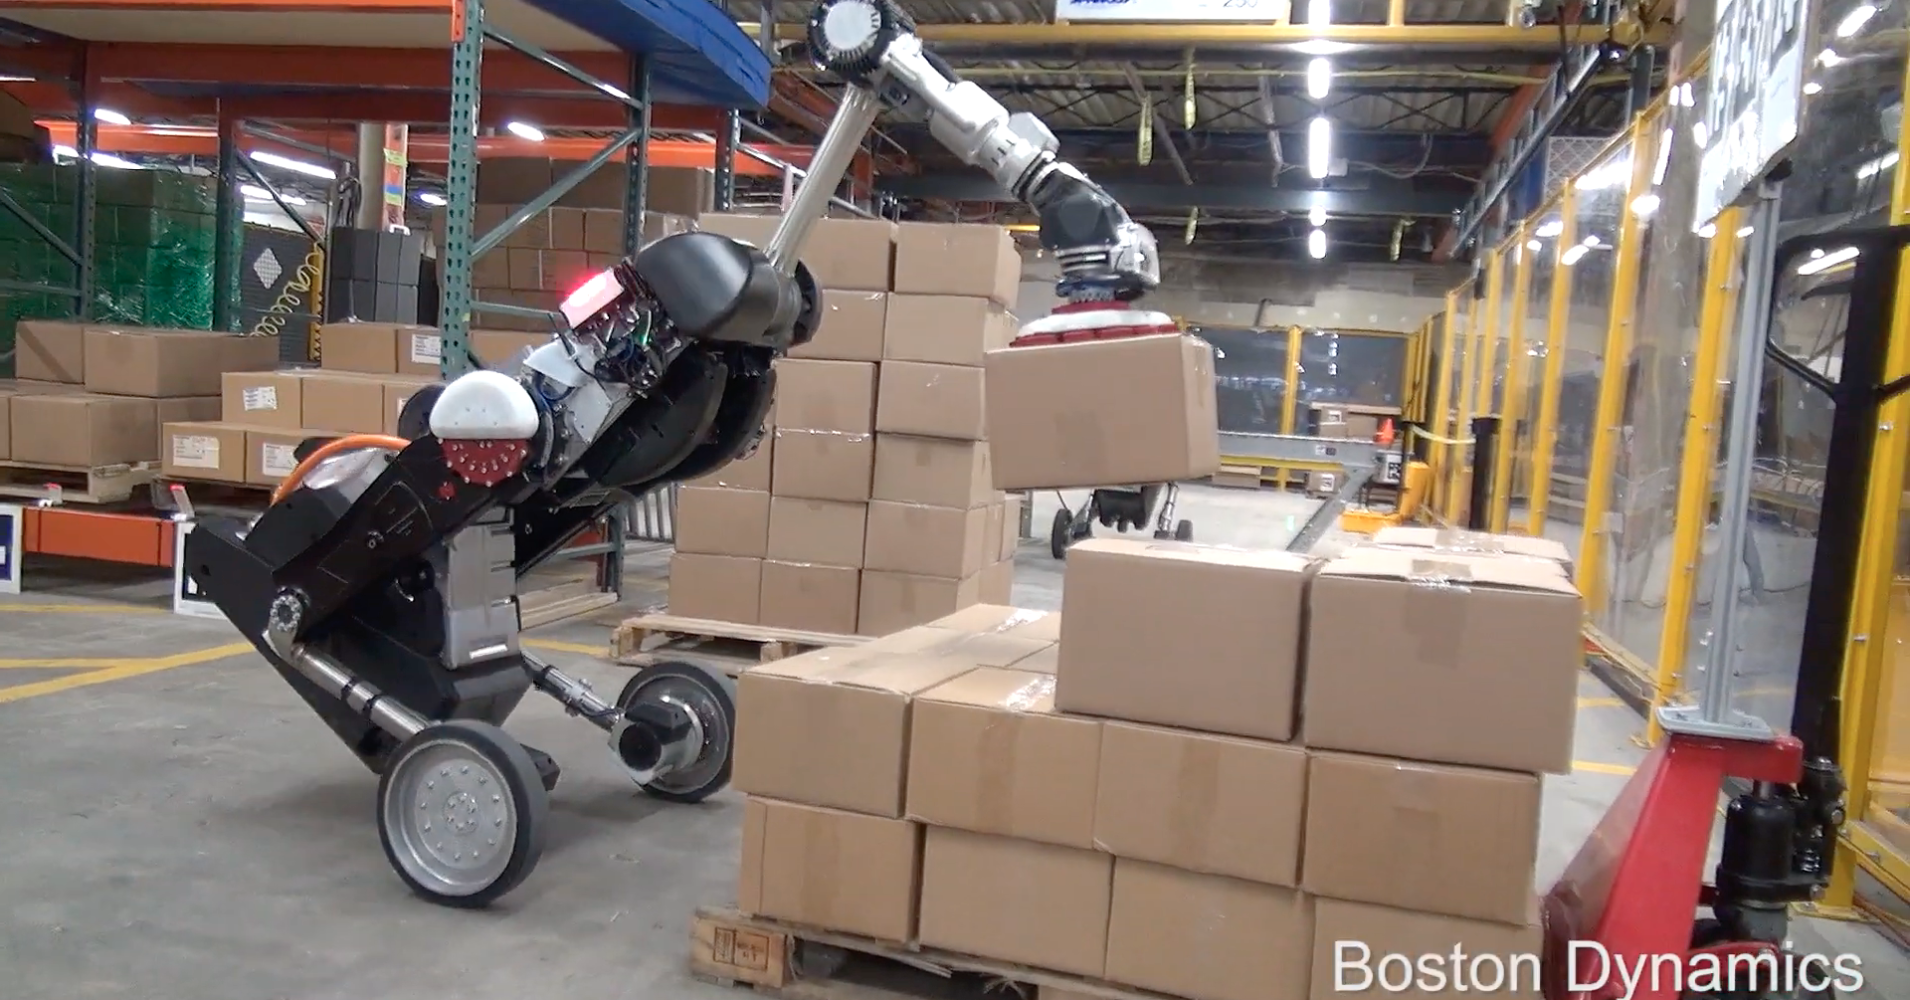 Watch this gigantic bird-like robot load boxes onto a conveyor belt